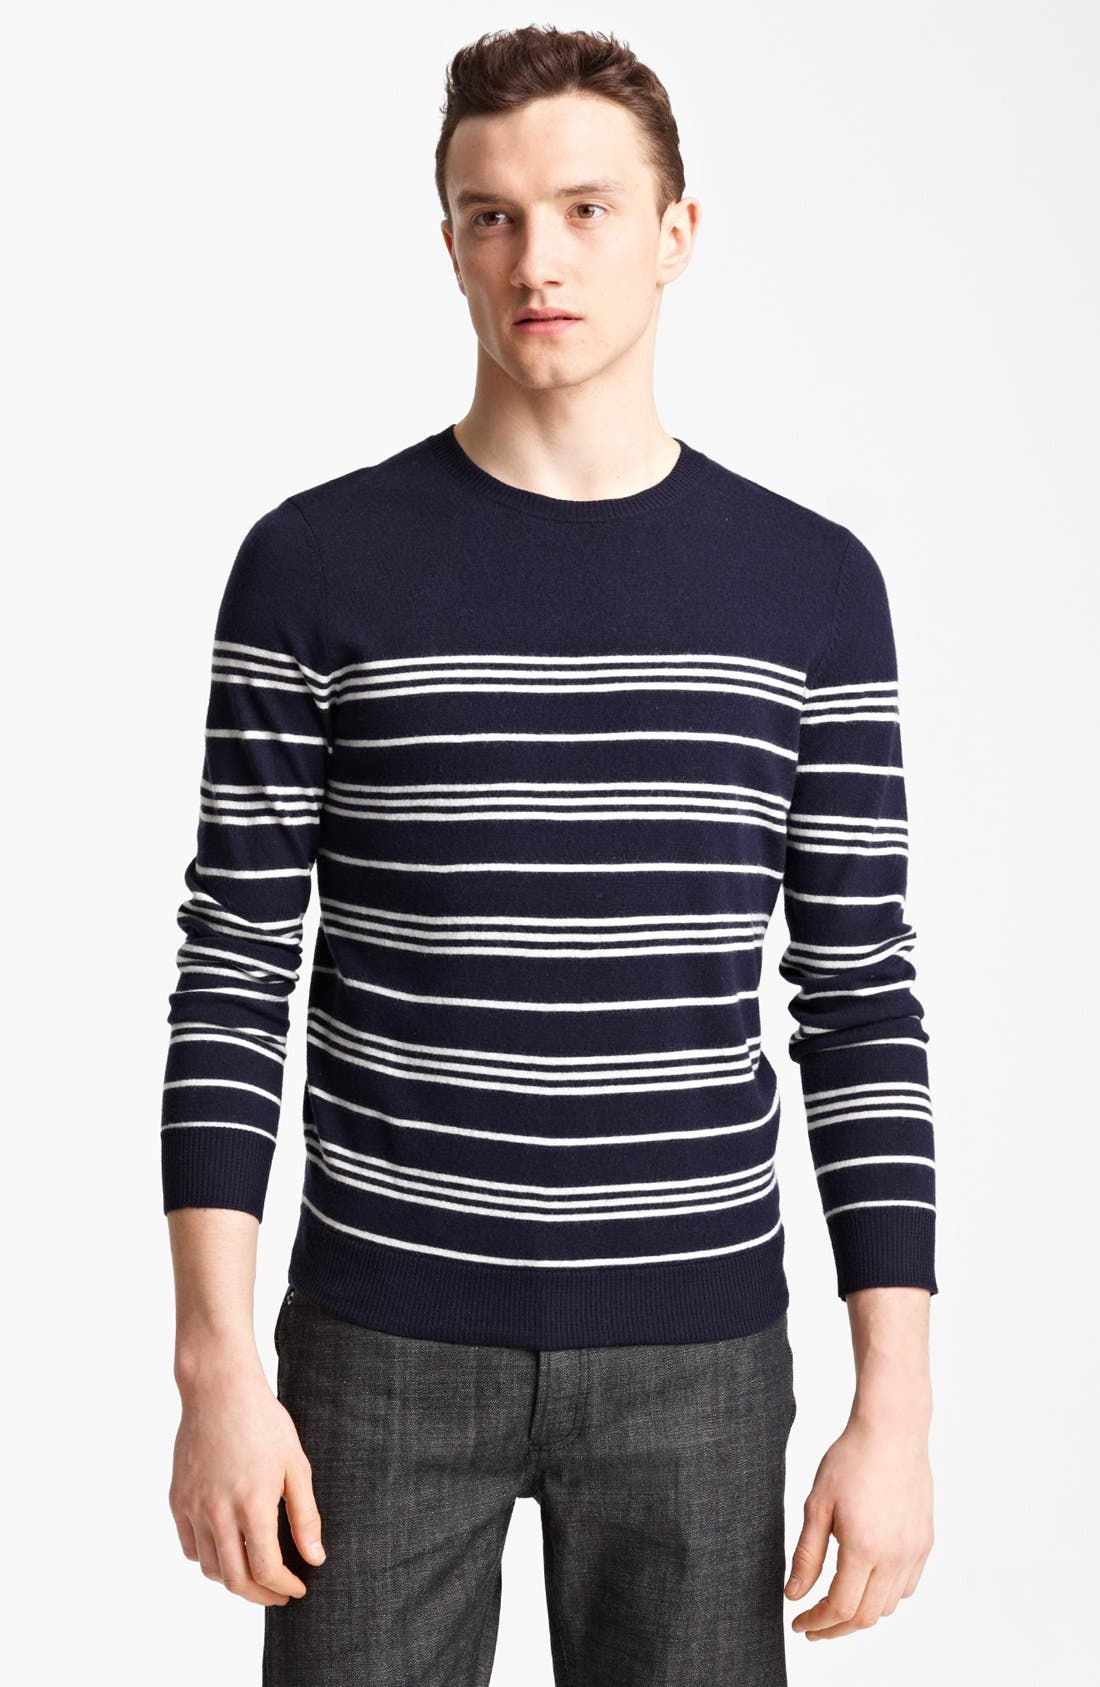 Alternate Image 1 Selected - A.P.C. Stripe Crewneck Wool Sweater